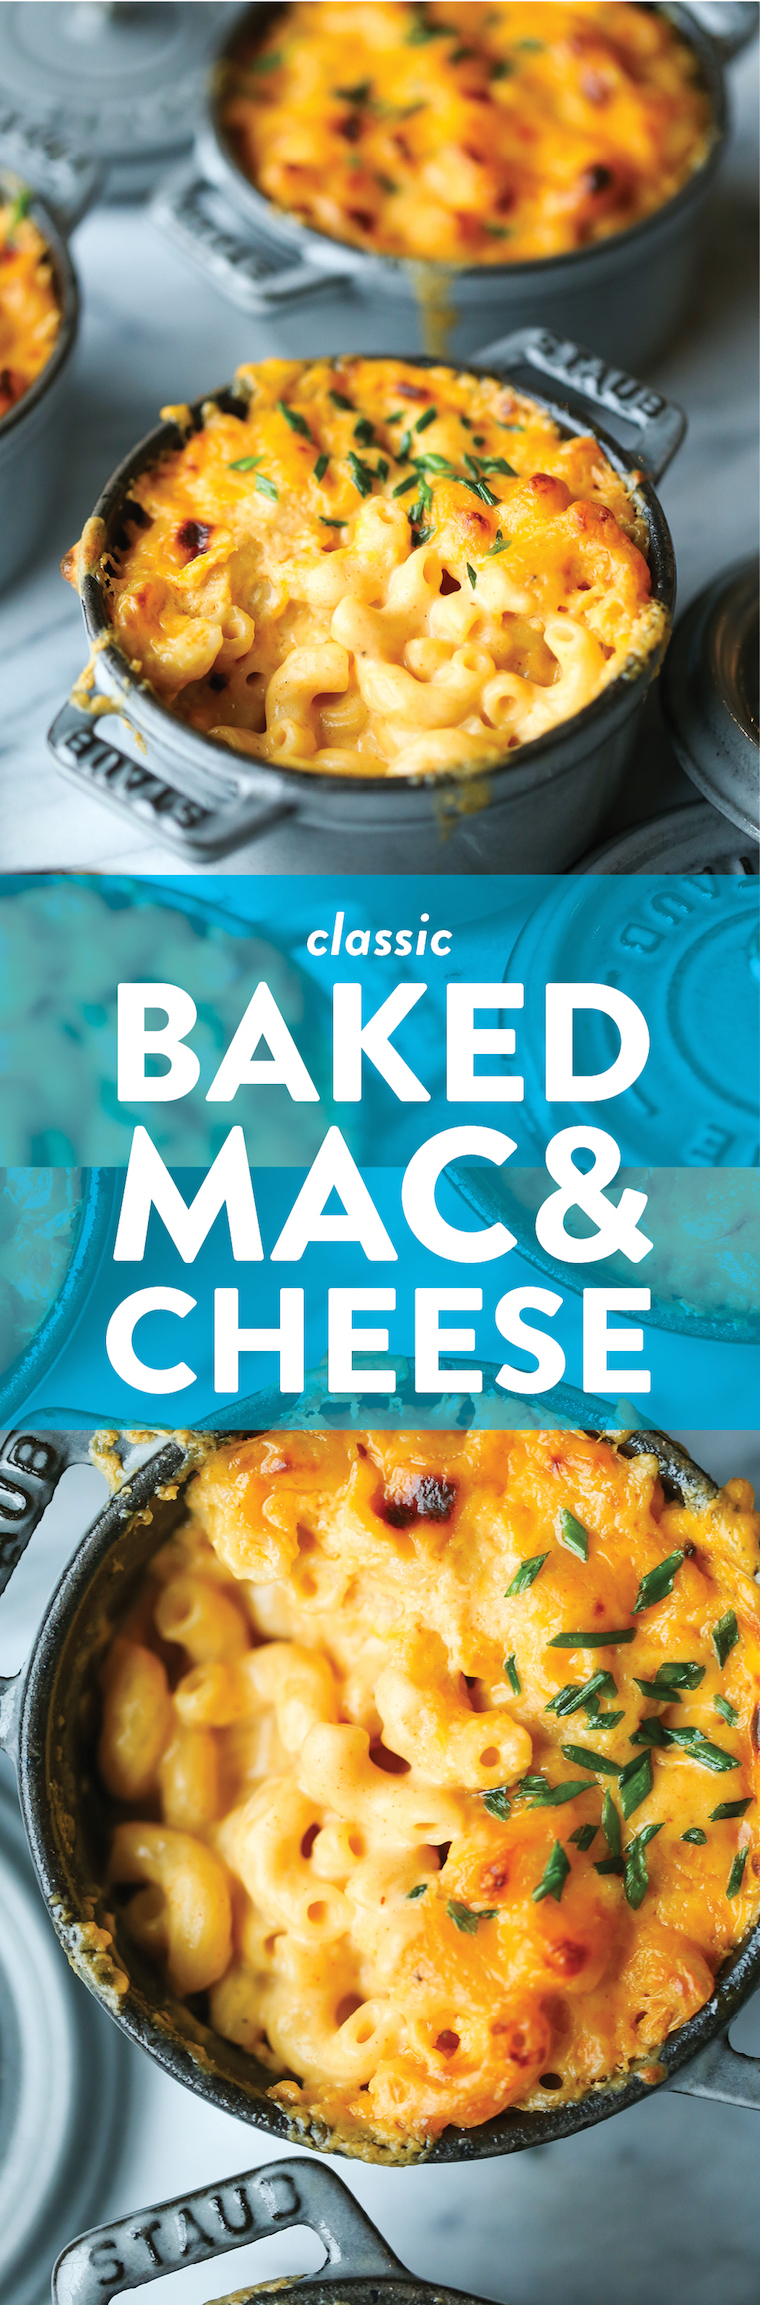 Baked Mac and Cheese - Everyone's favorite classic mac and cheese! Super simple, super easy and super quick. You'll never want the boxed stuff ever again!